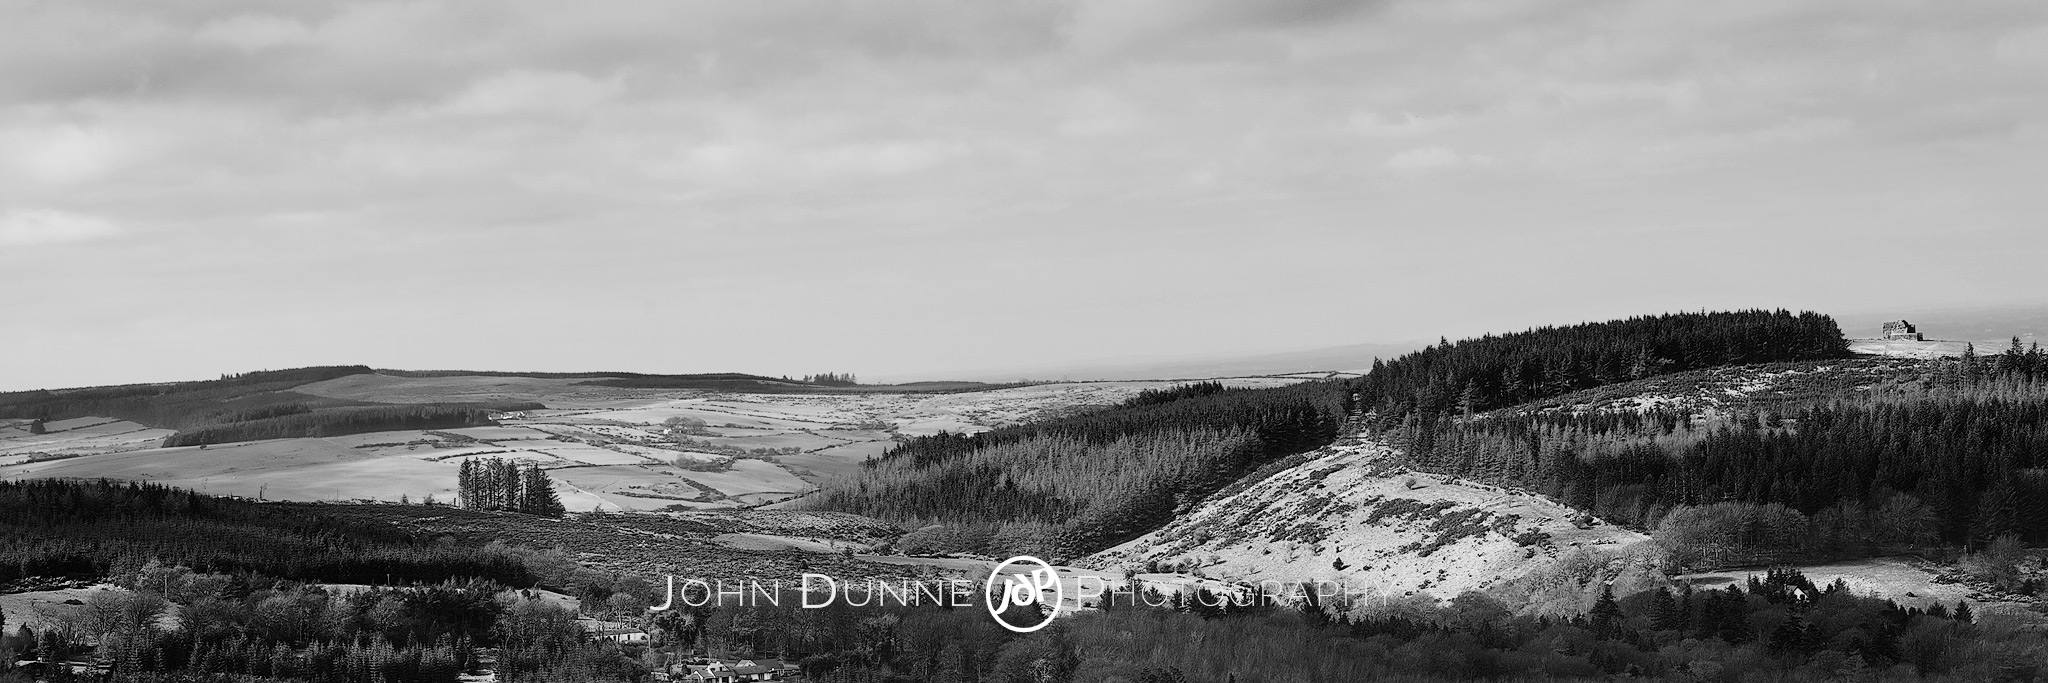 The Ruin on the Hill by John Dunne.